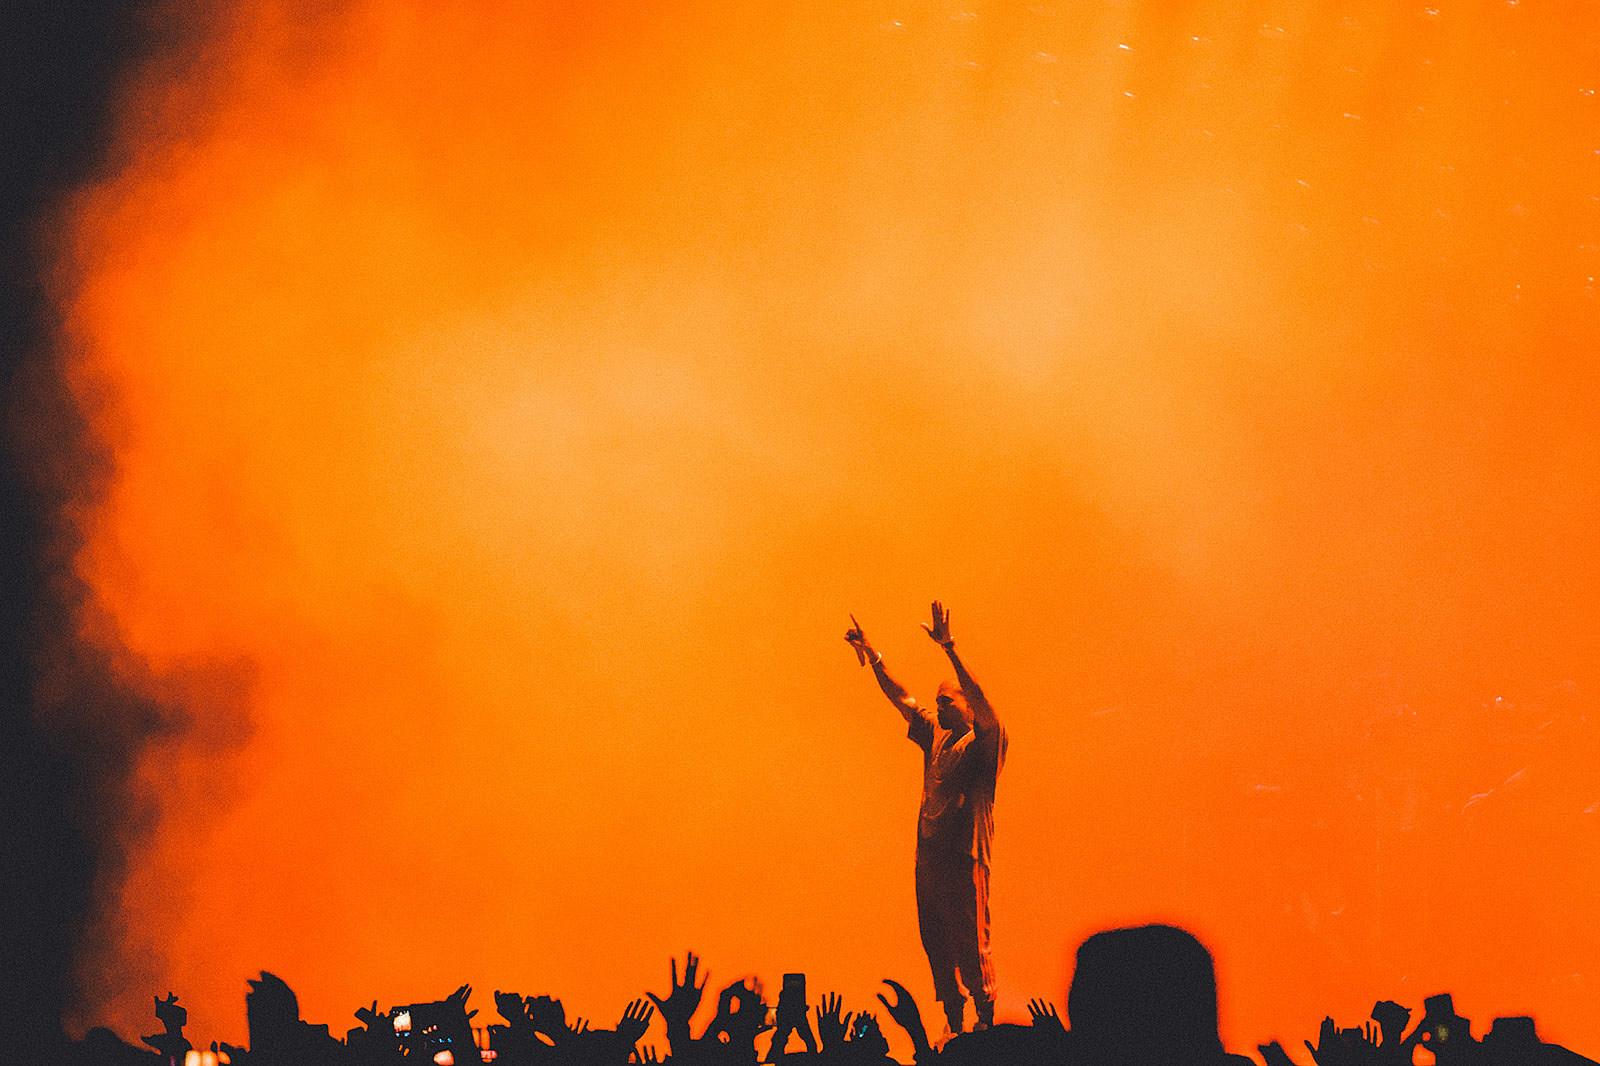 Kanye West at The Meadows 2016 - Sunday